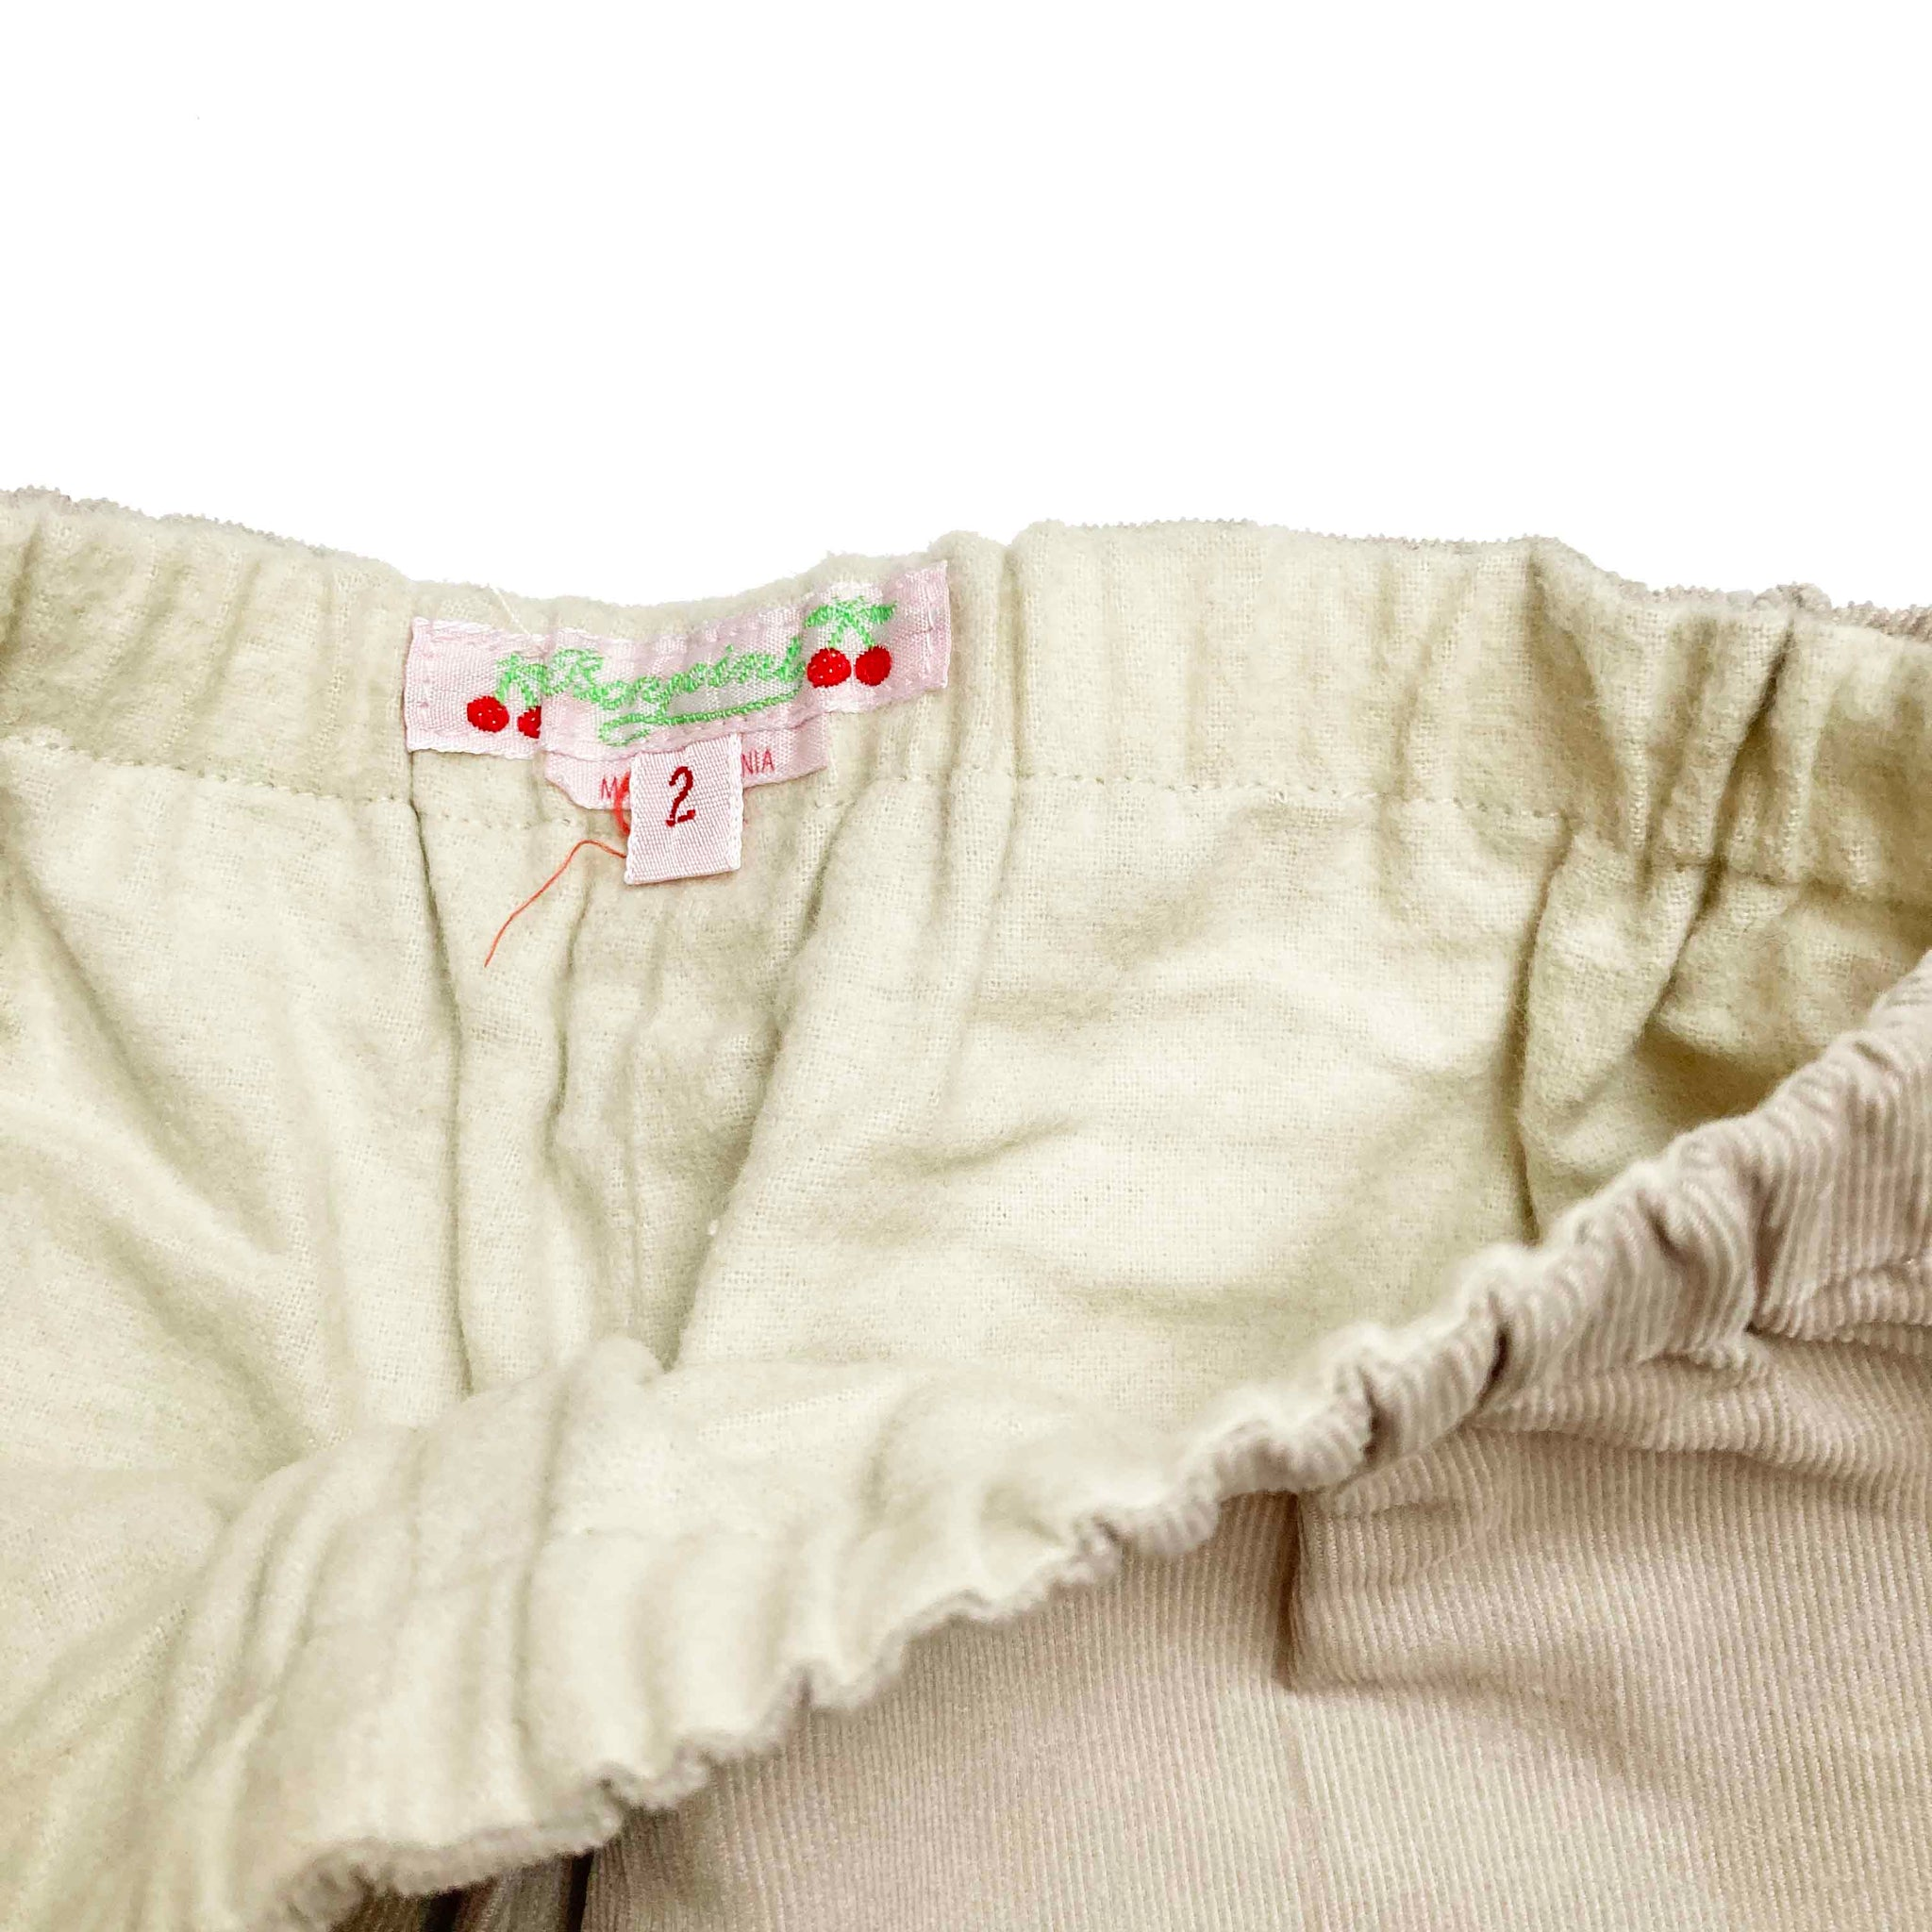 BONPOINT CREAM CORD TROUSERS 2 YEARS